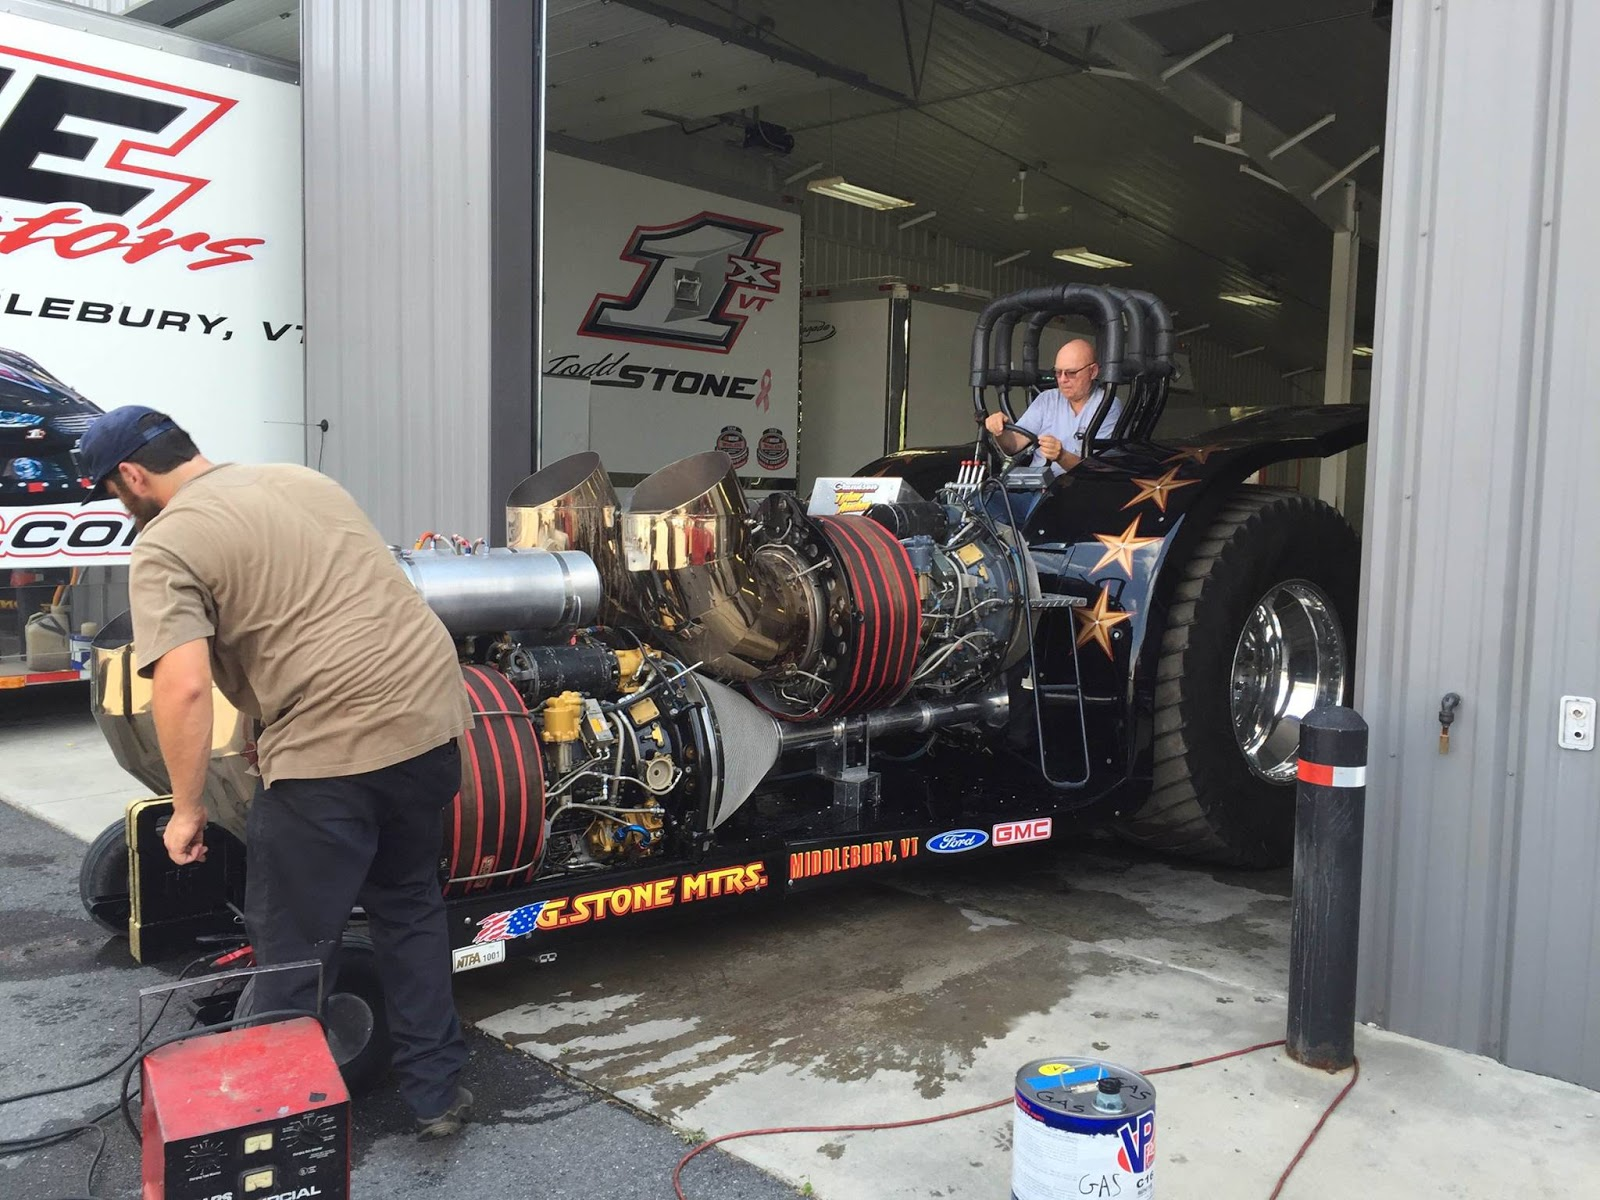 Tractor Pulling News - Pullingworld com: The General Stage 4